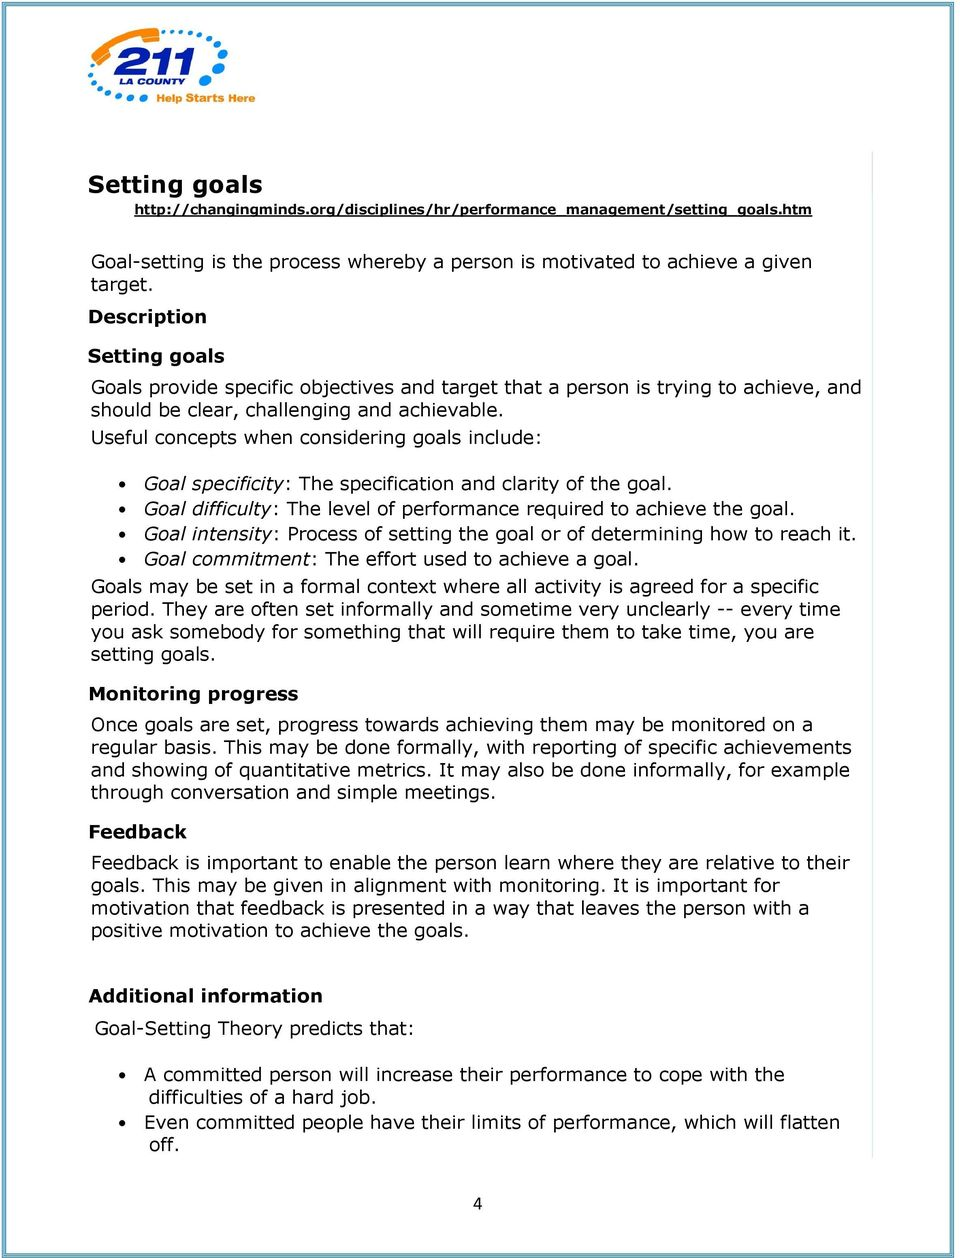 Useful concepts when considering goals include: Goal specificity: The specification and clarity of the goal. Goal difficulty: The level of performance required to achieve the goal.